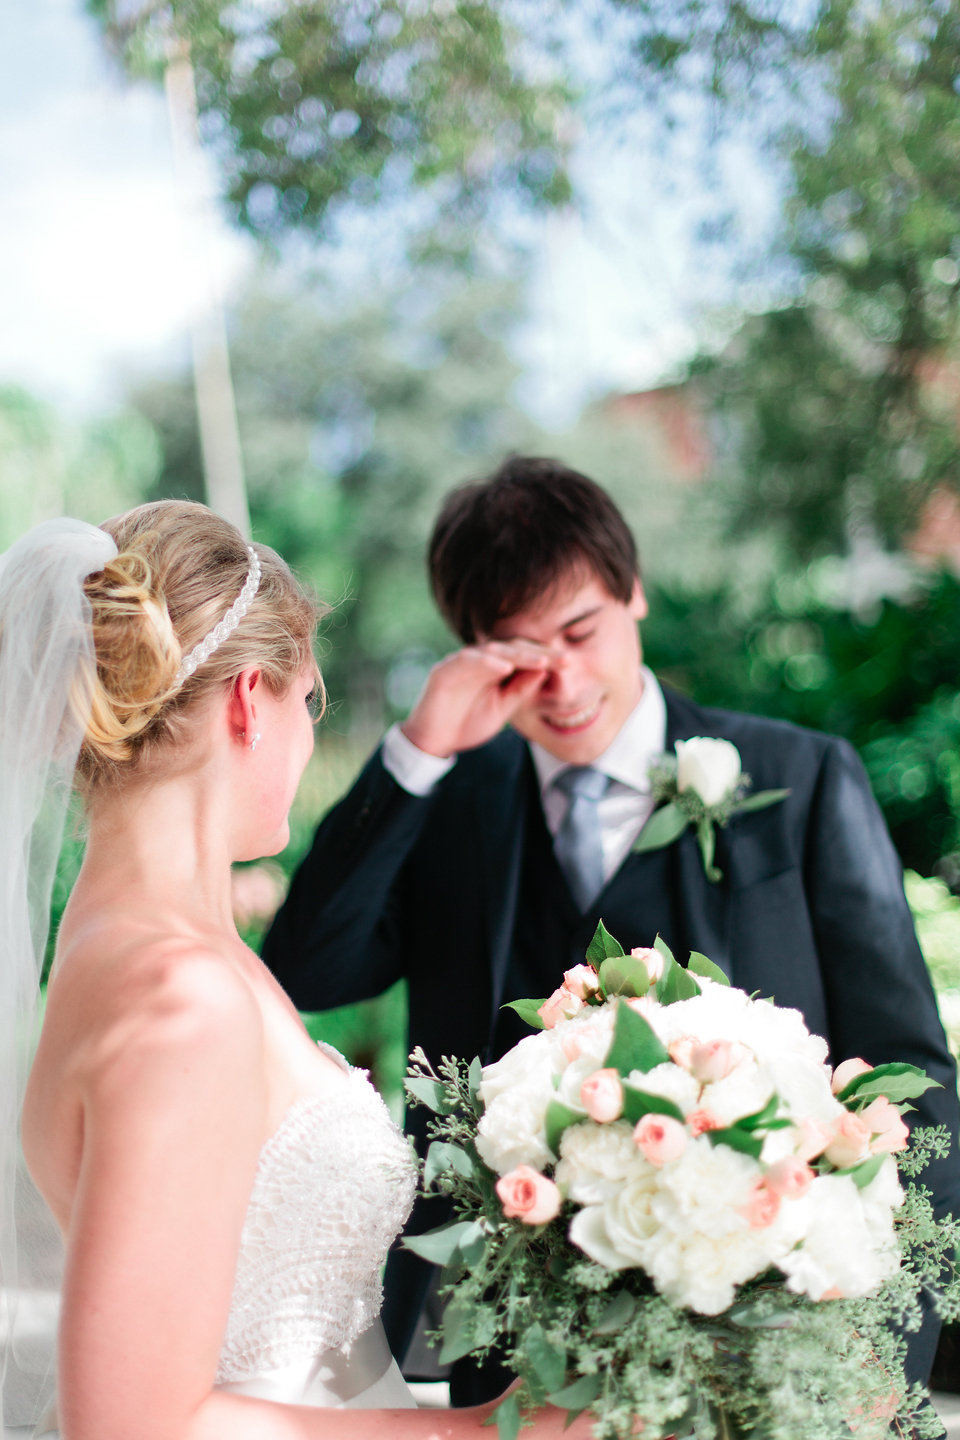 Every girl's dream - a tear from the groom during the intimate moments of their first look.